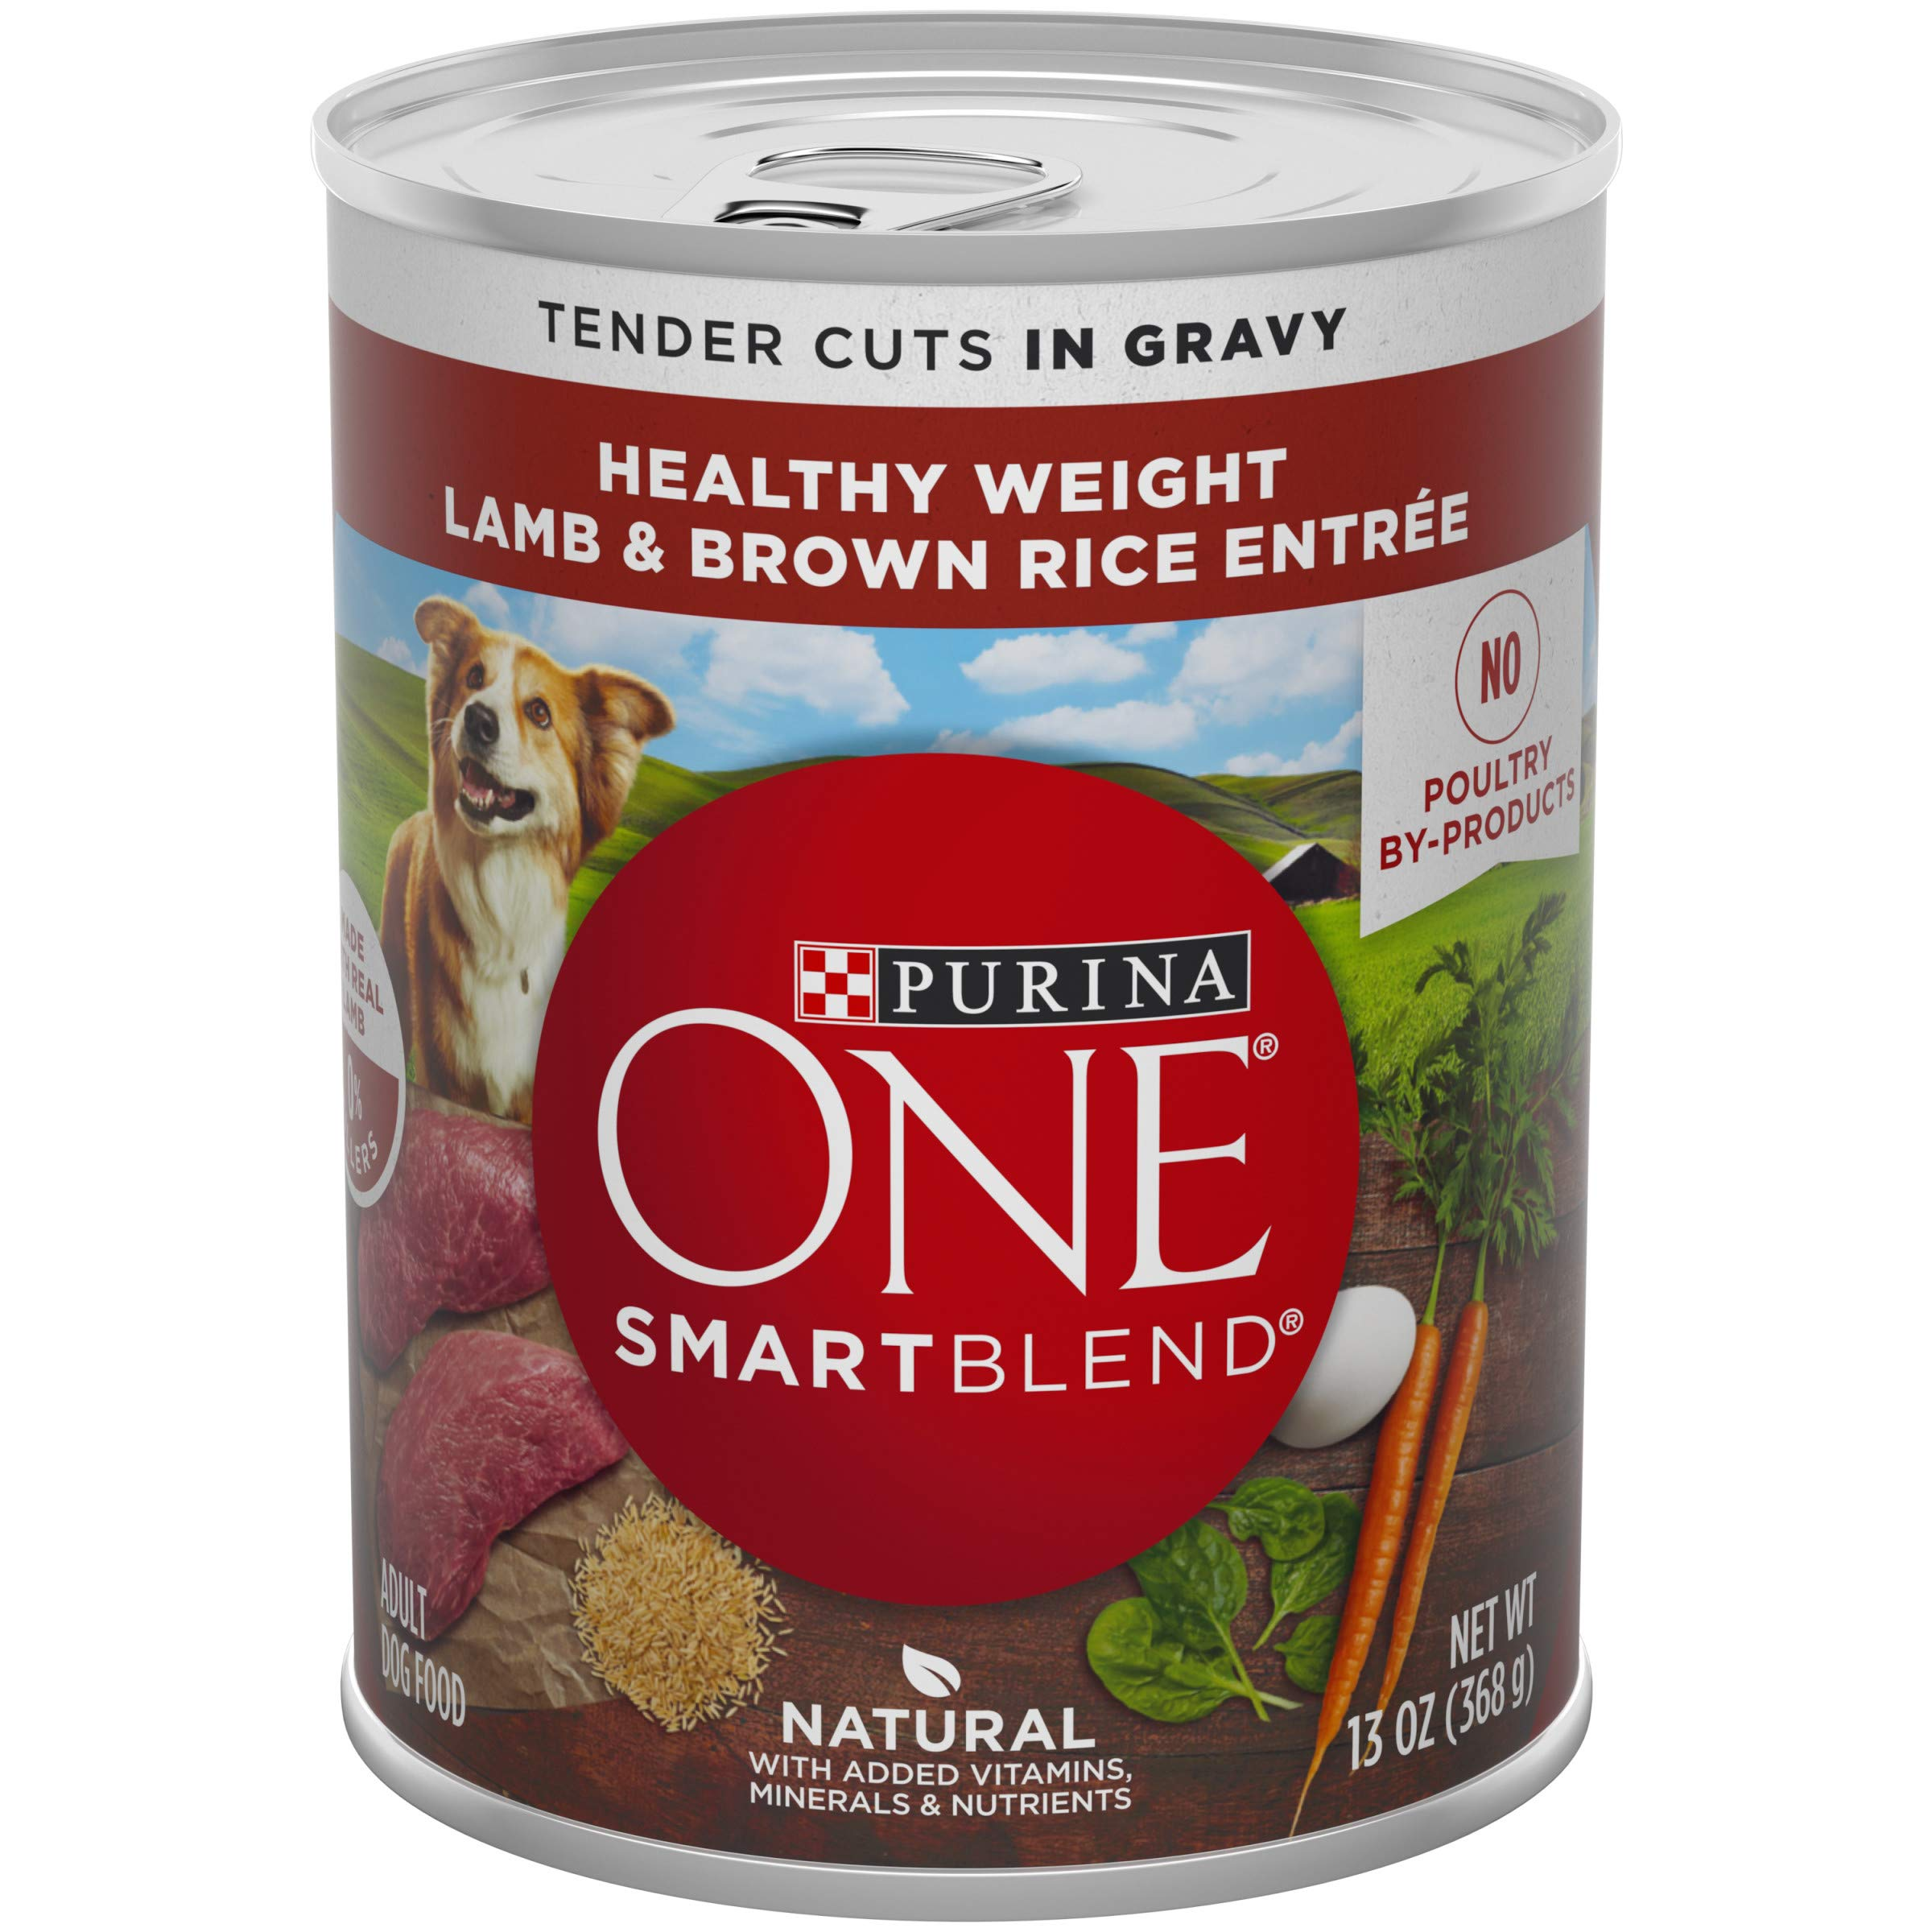 Purina ONE Weight Management, Natural Wet Dog Food, SmartBlend Healthy Weight Tender Cuts Lamb & Brown Rice - (12) 13 oz. Cans by Purina ONE